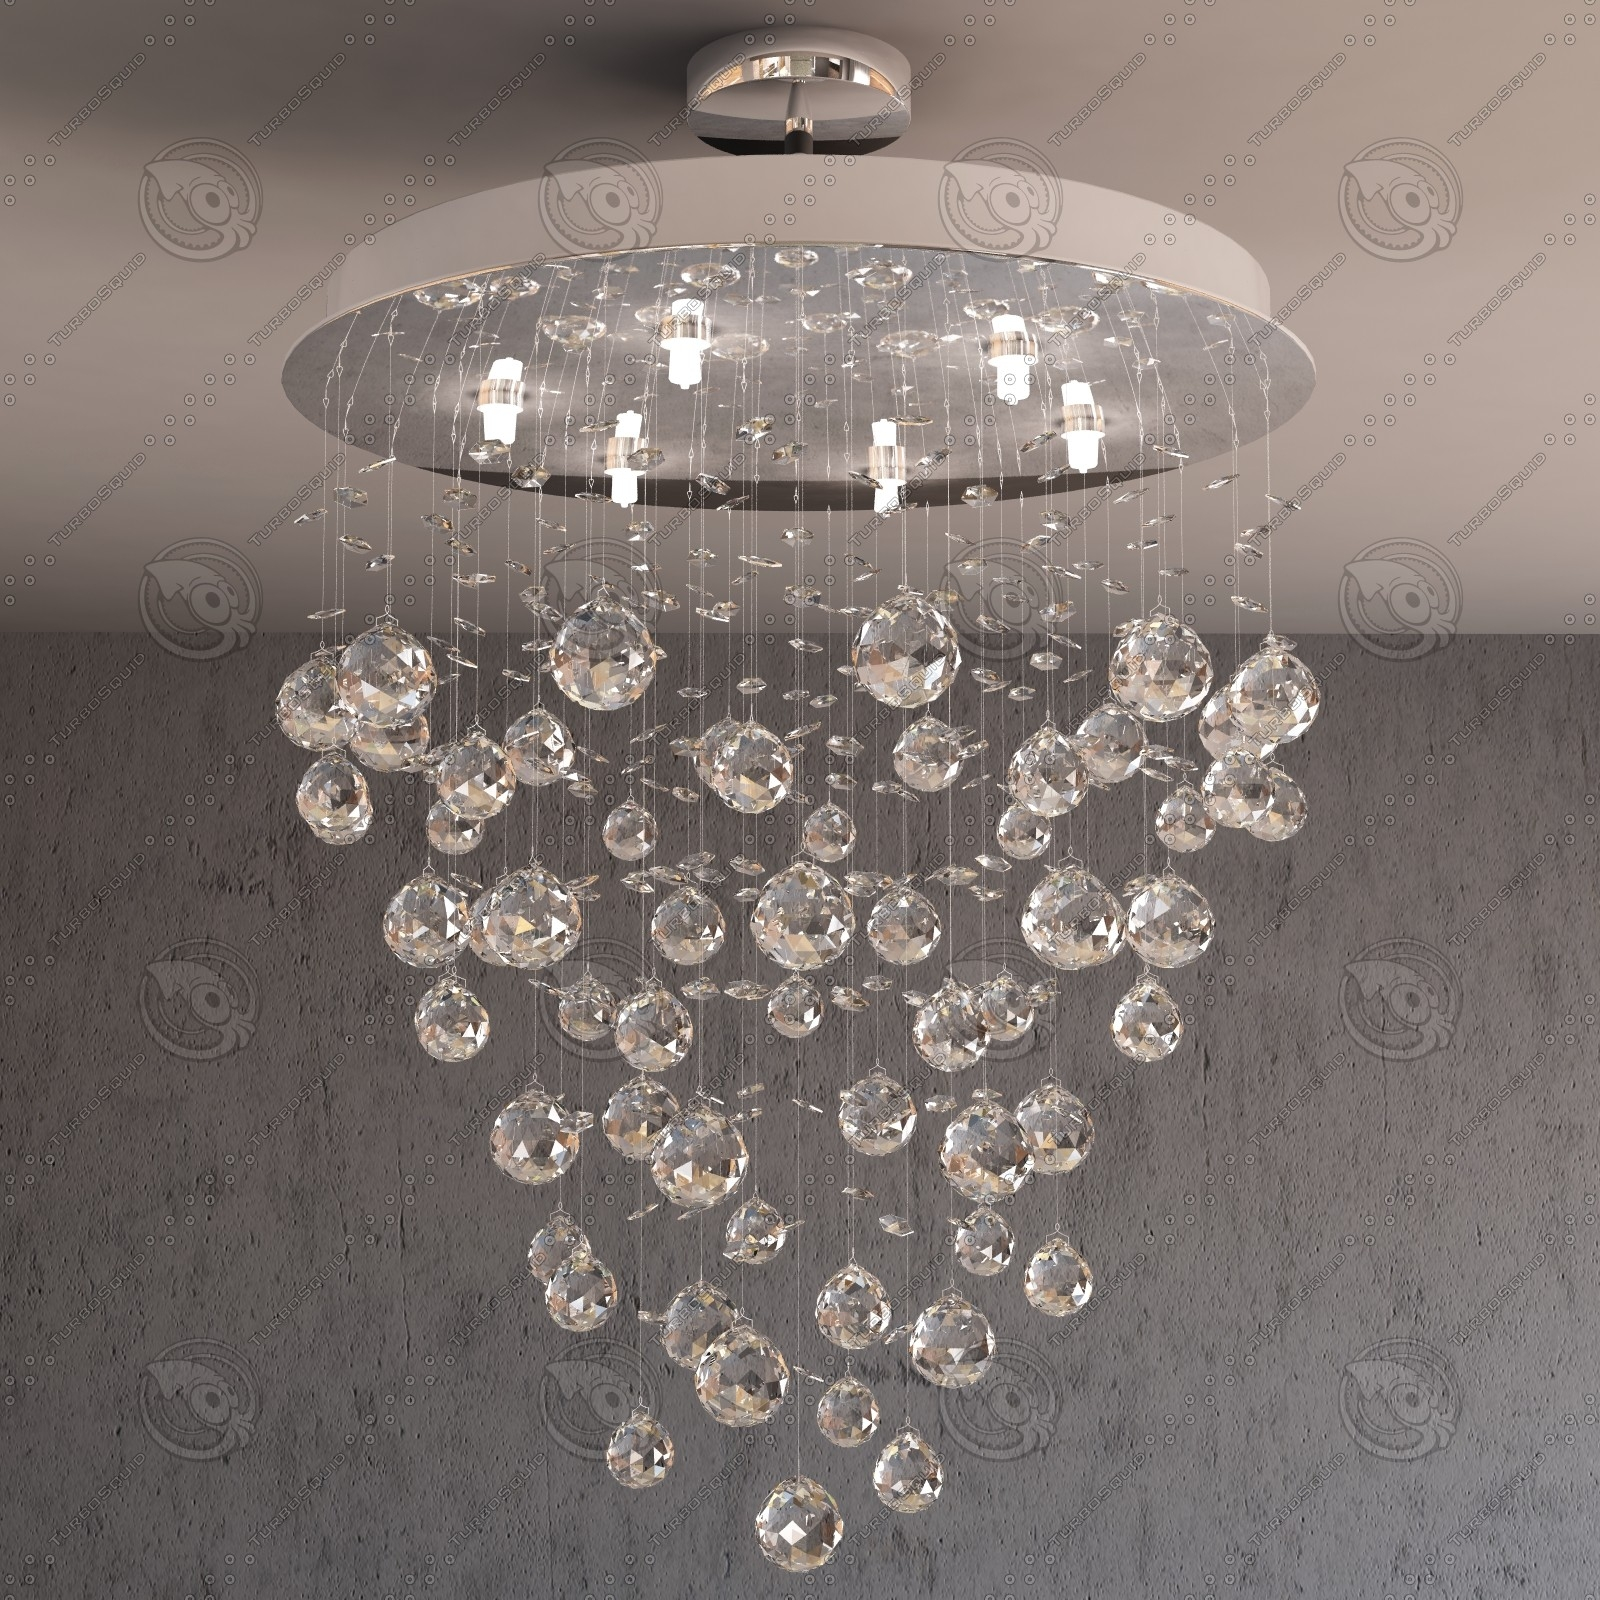 12 Inspirations Of Waterfall Crystal Chandelier